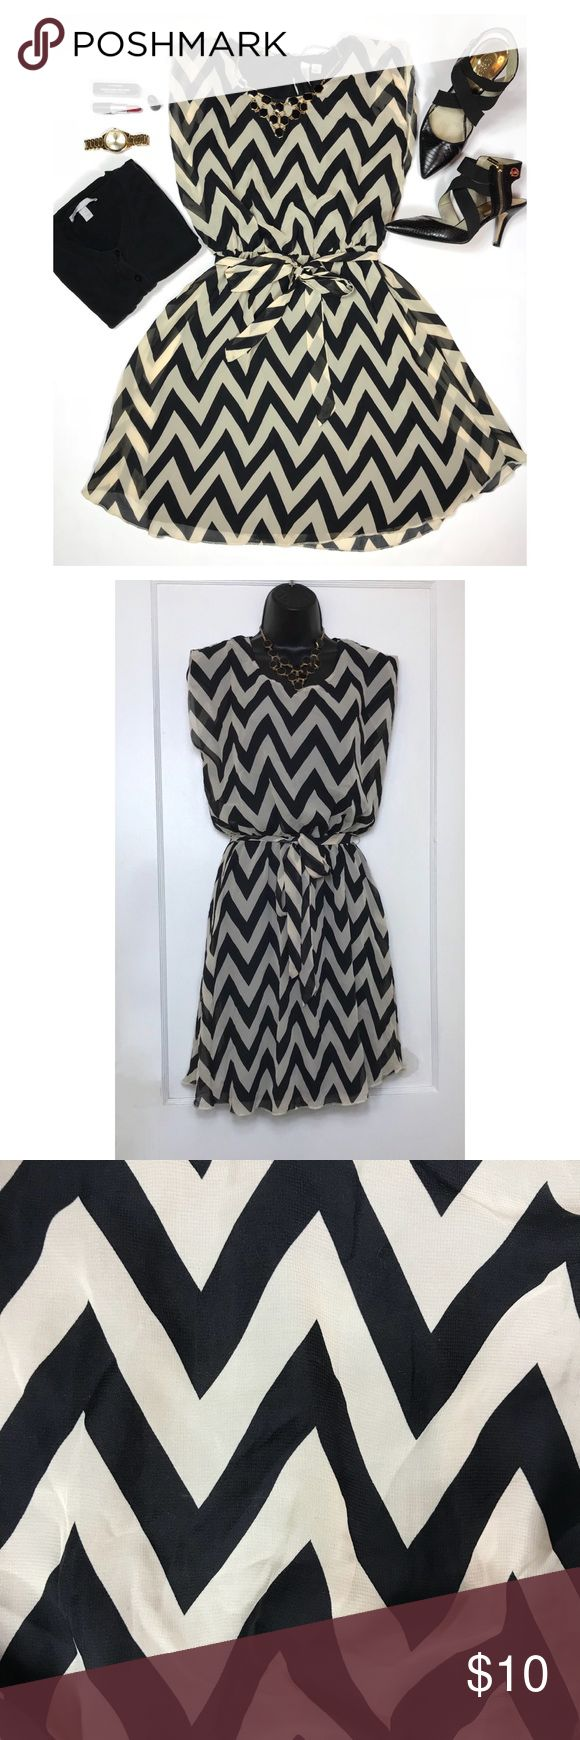 Chevron Print Dress Sleeveless dress features a bold chevron stripe throughout. Waist features elastic for a customized fit. Pull-on design. A-line skirt with straight hem that hits above the knee. Fully lined. Dresses